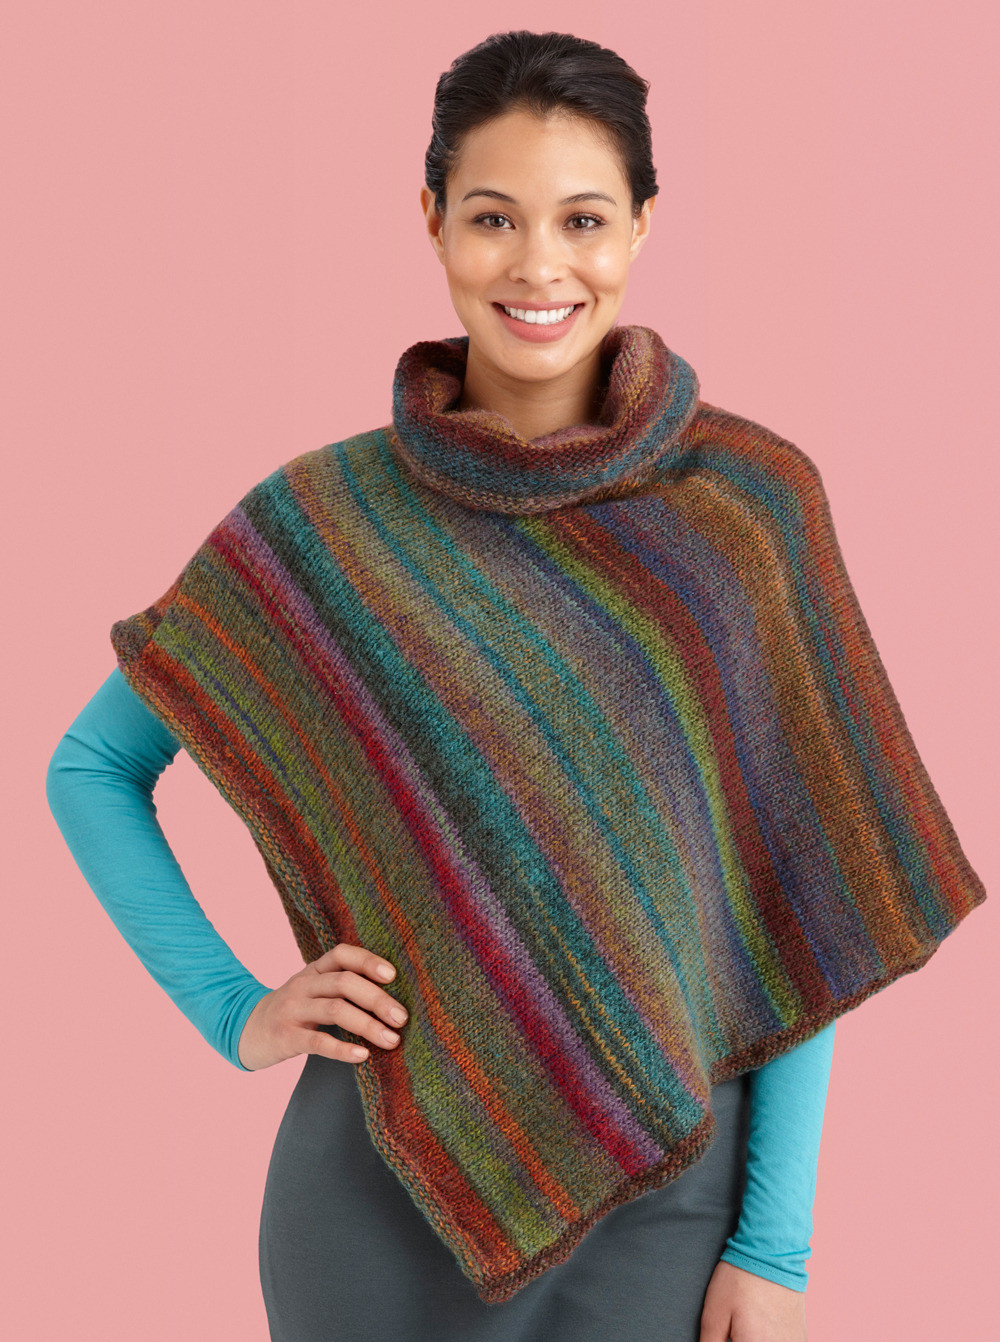 Poncho Knitting Patterns Best Of Cowl Neck Striped Poncho In Lion Brand Amazing L Of Poncho Knitting Patterns Fresh Click for Close Up Anything and Everything